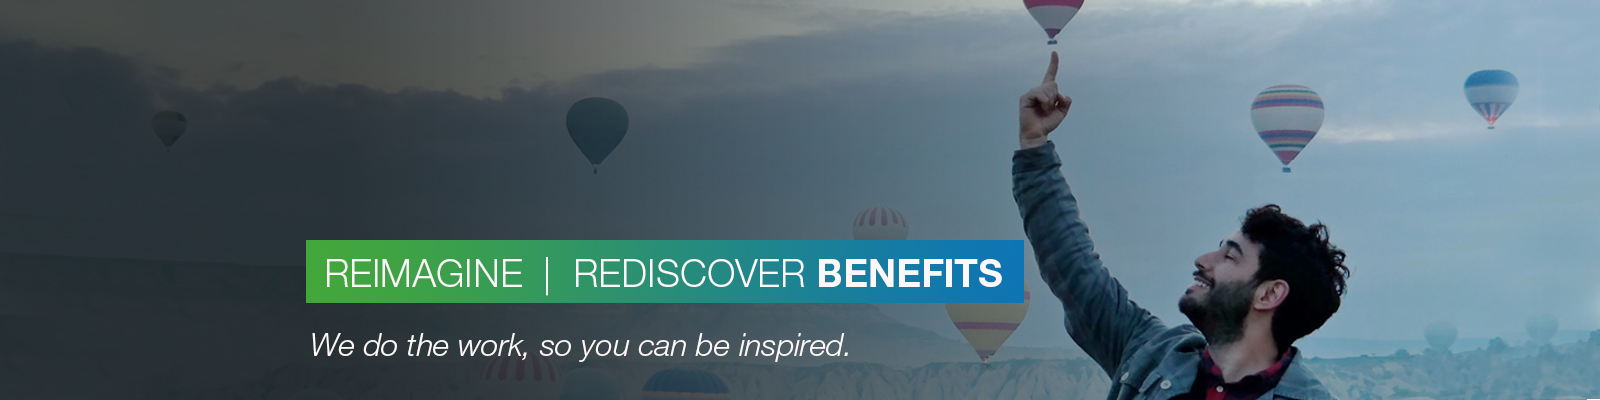 REIMAGINE | REDISCOVER BENEFITS: We do the work, so you can be inspired.